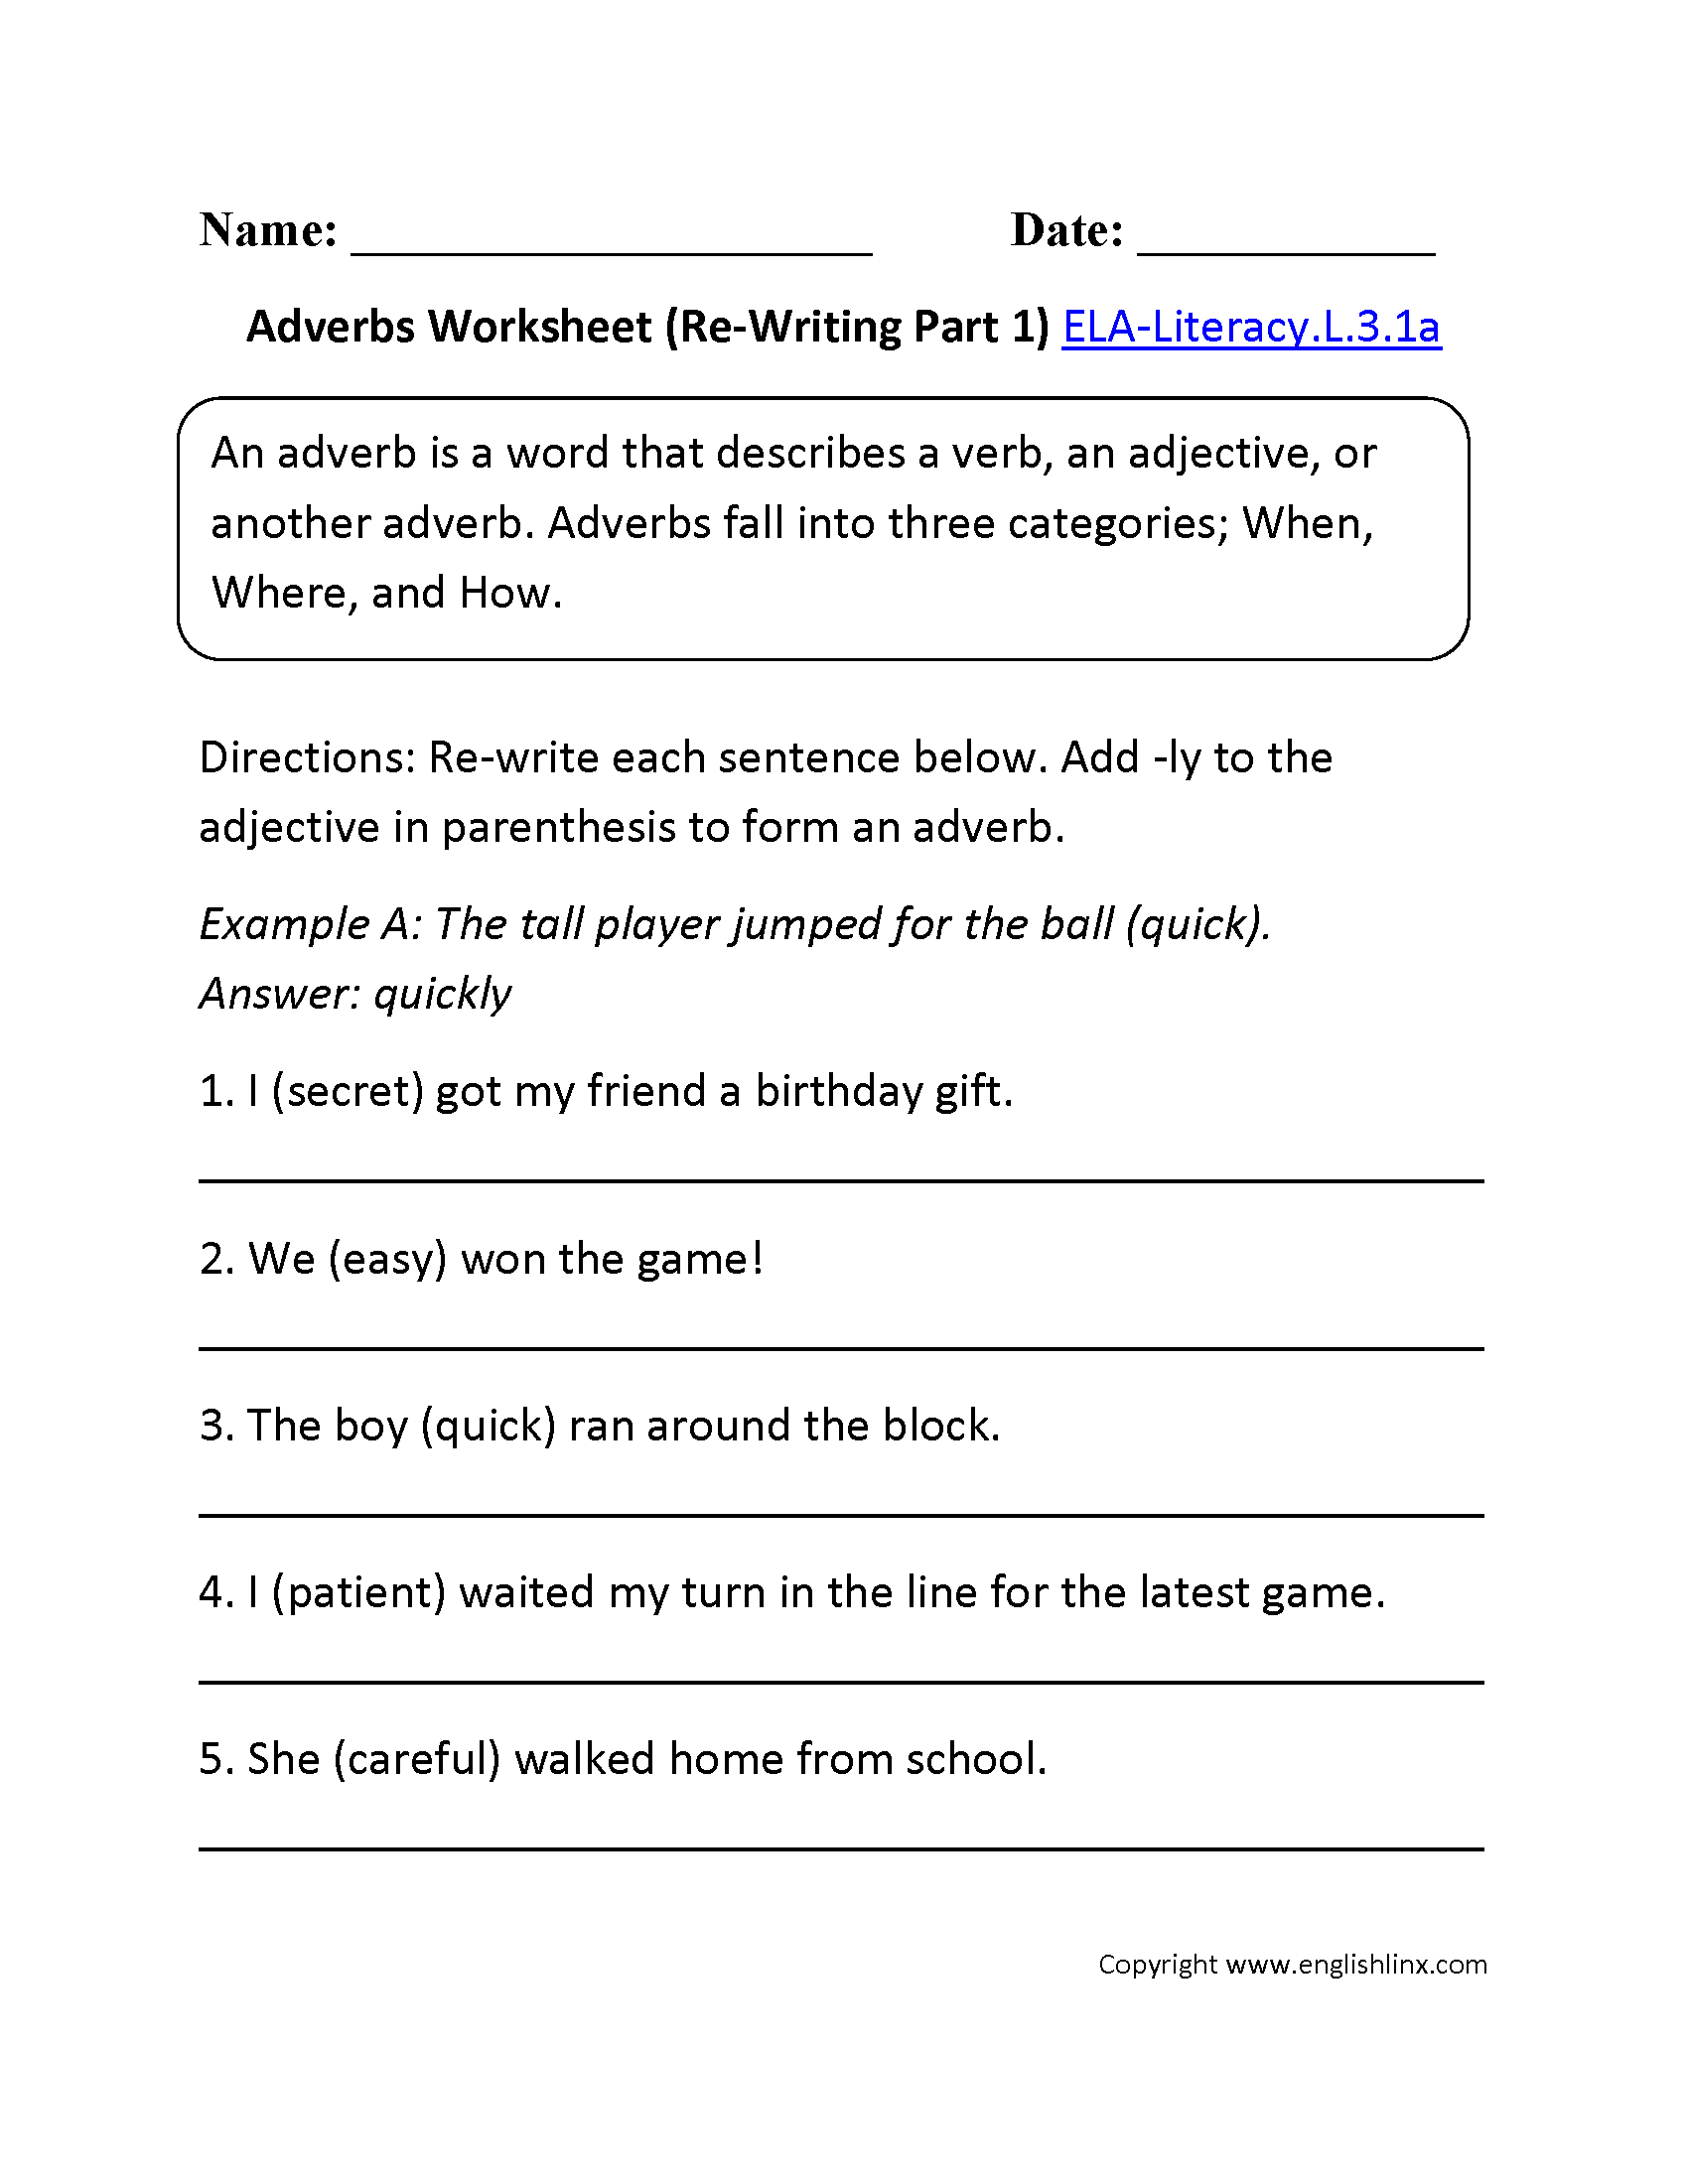 Worksheet Adverb Worksheets For Grade 1 adverbs worksheet grade 4 memarchoapraga adjectives and worksheets for 3 printable